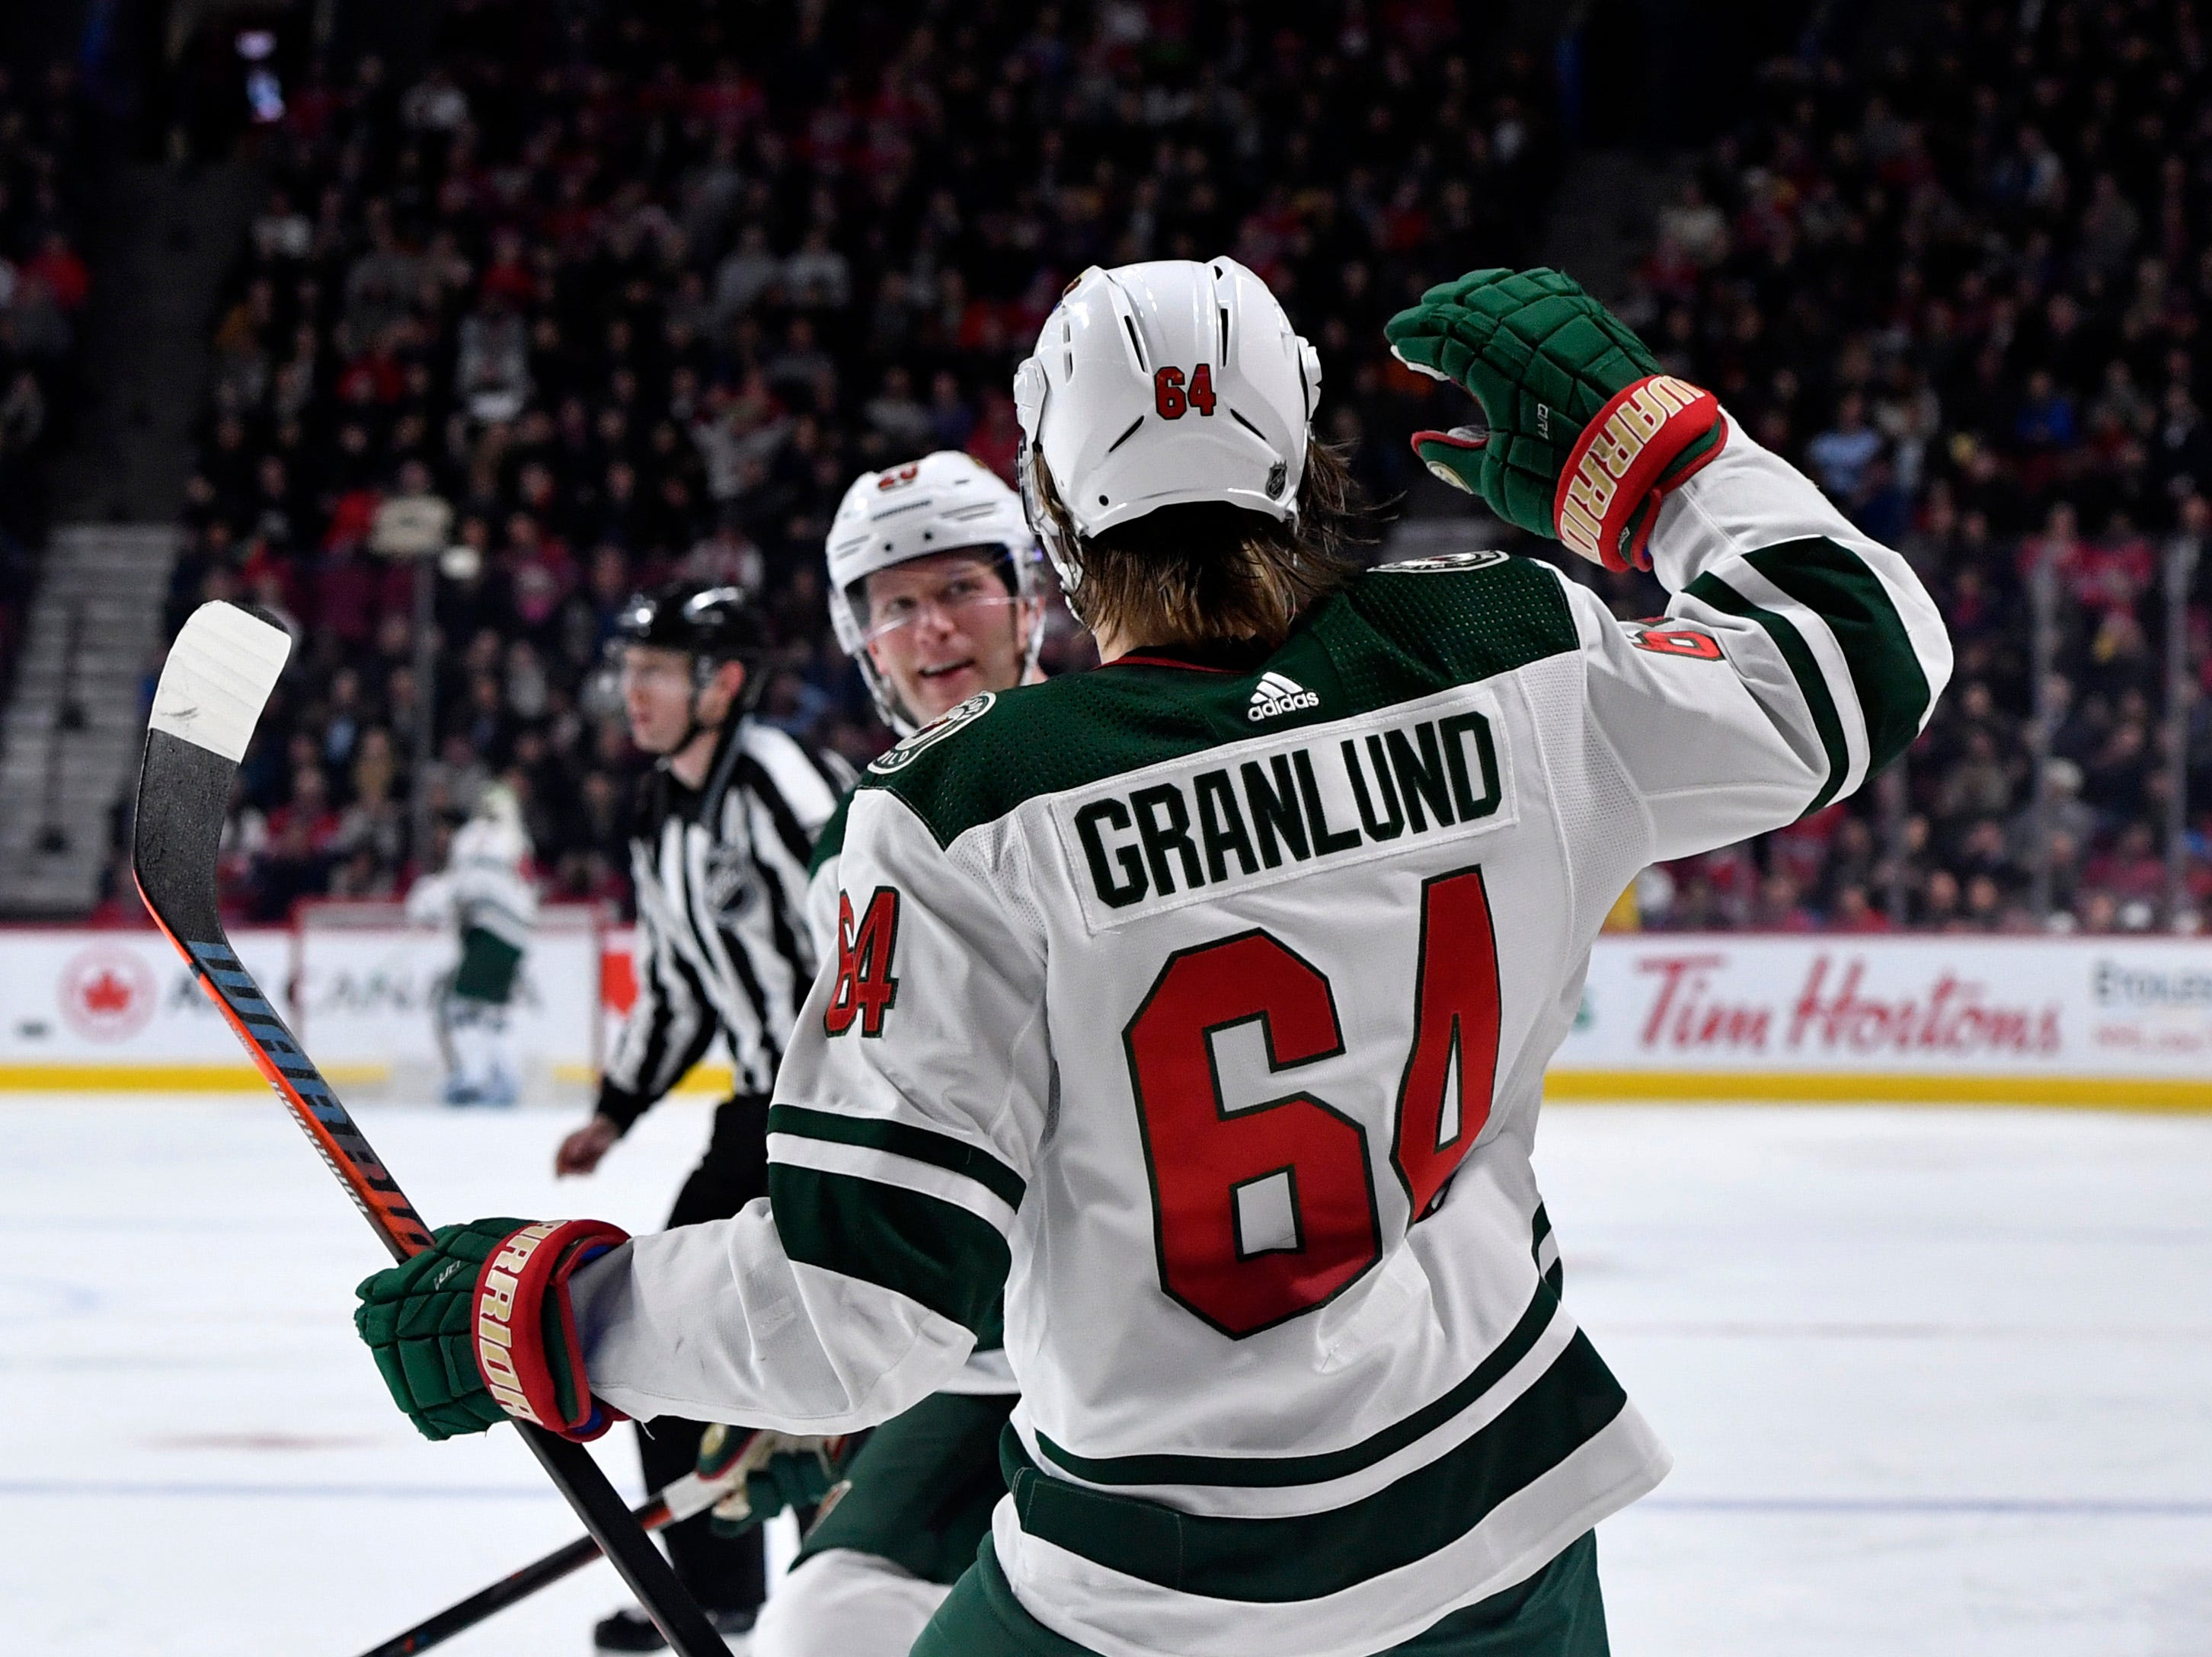 Jan. 7: Minnesota Wild forward Mikael Granlund celebrates his goal in a 1-0 win against the Montreal Canadiens. It was his first goal since Nov. 29.